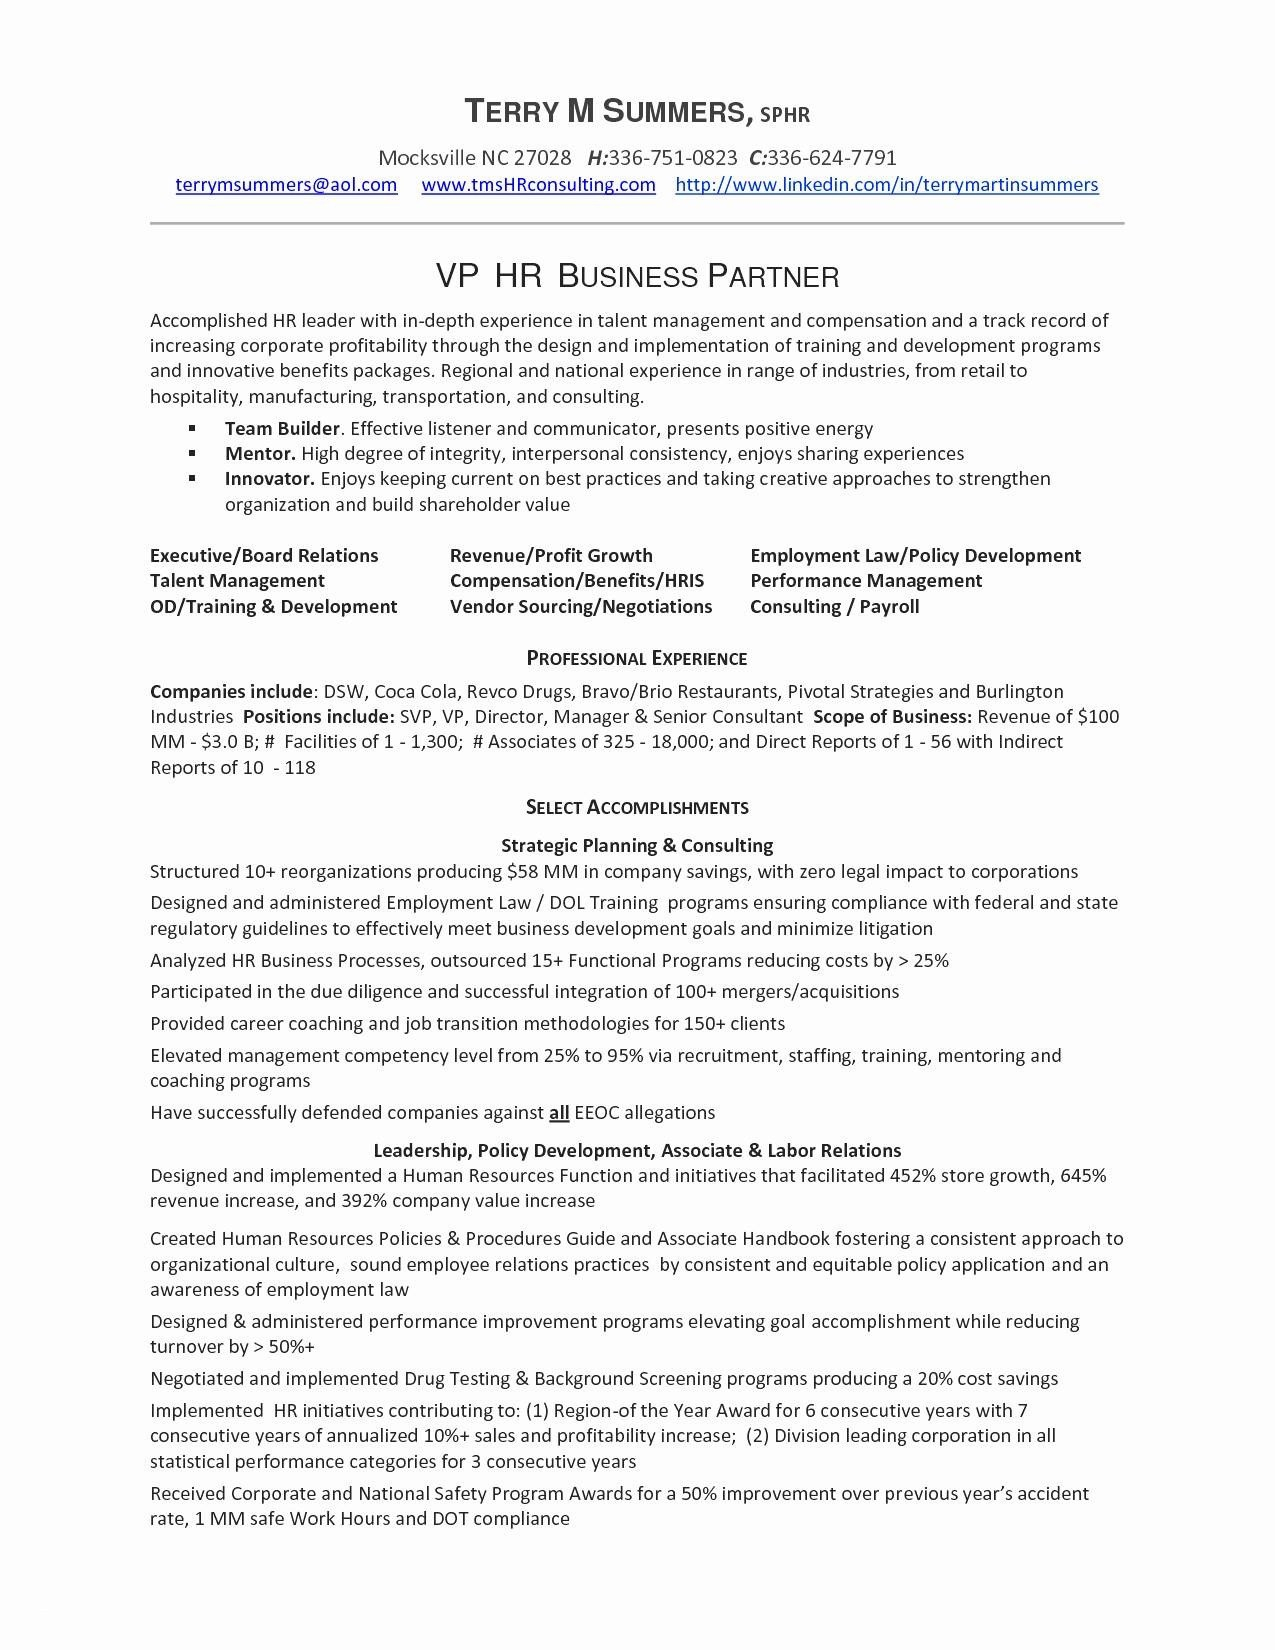 Business Development Resume Sample - Training and Development Resume Sample New Product Management Resume